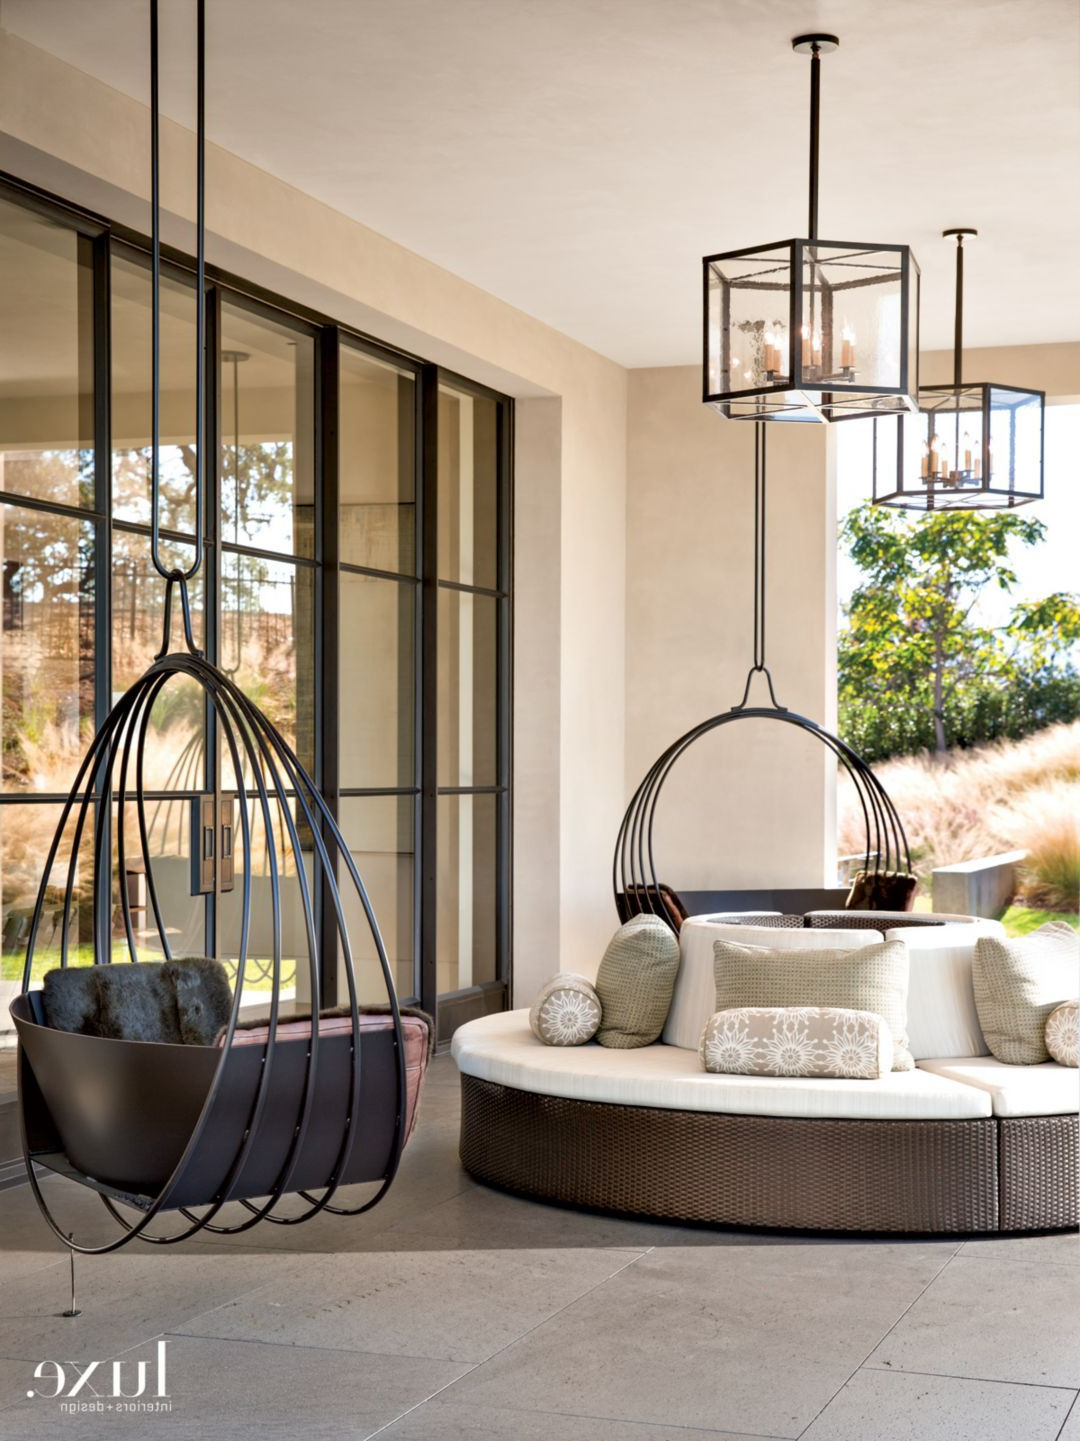 Favorite Modern Outdoor Seating From Top Like Seats That Twirl Around Pertaining To Lamp Outdoor Porch Swings (View 2 of 30)